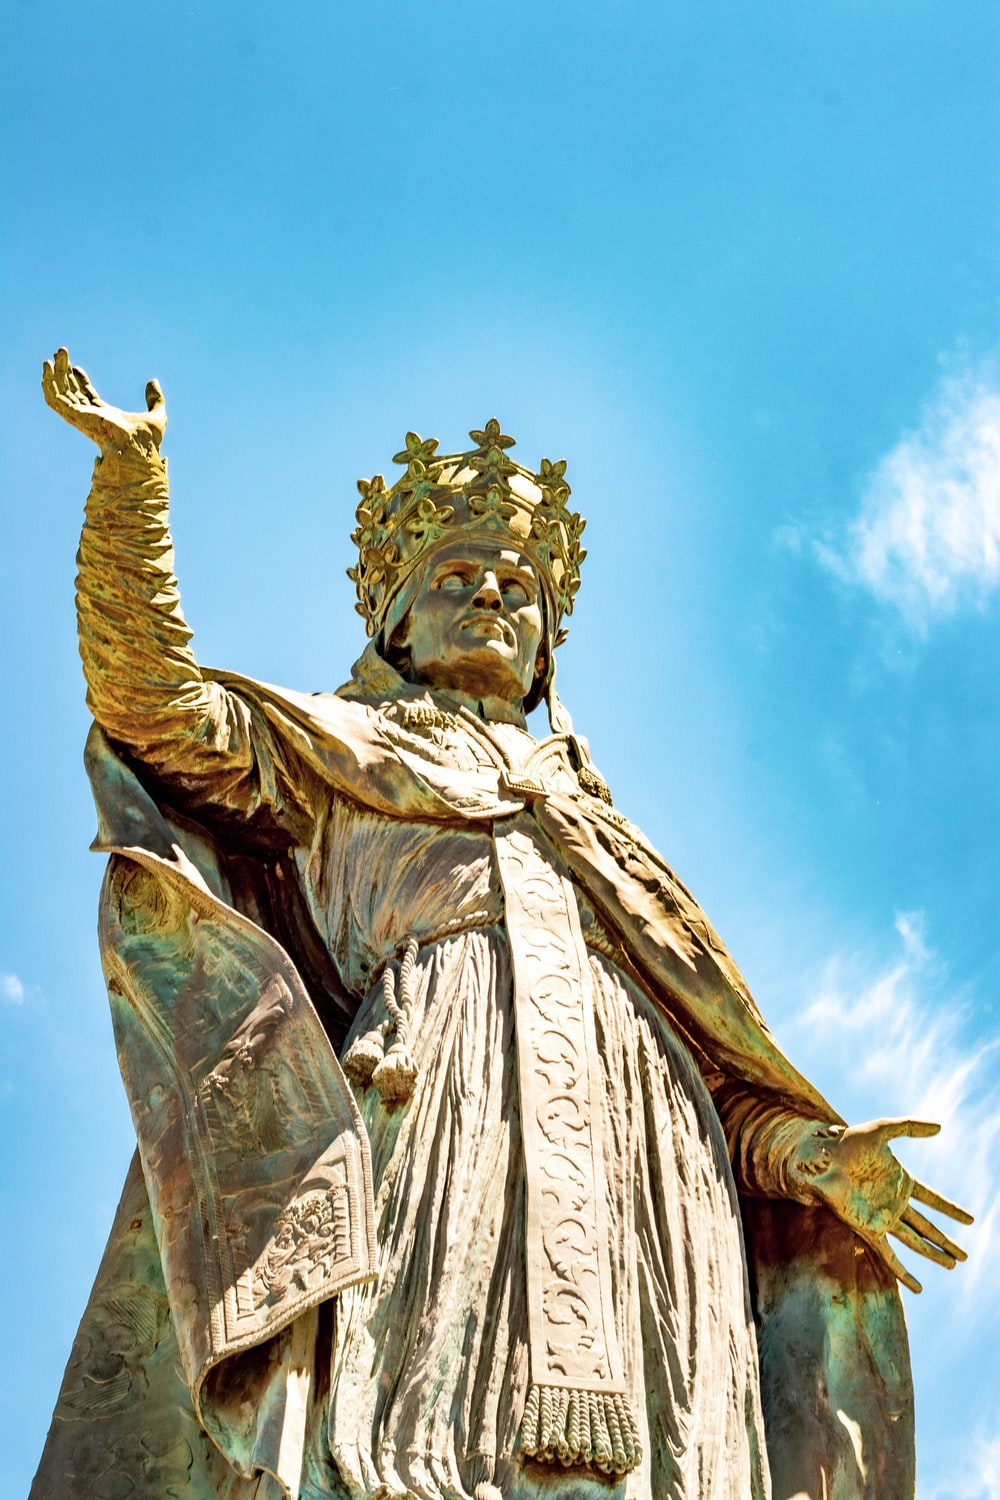 close-up photography of man wearing cape and crown statue during daytime